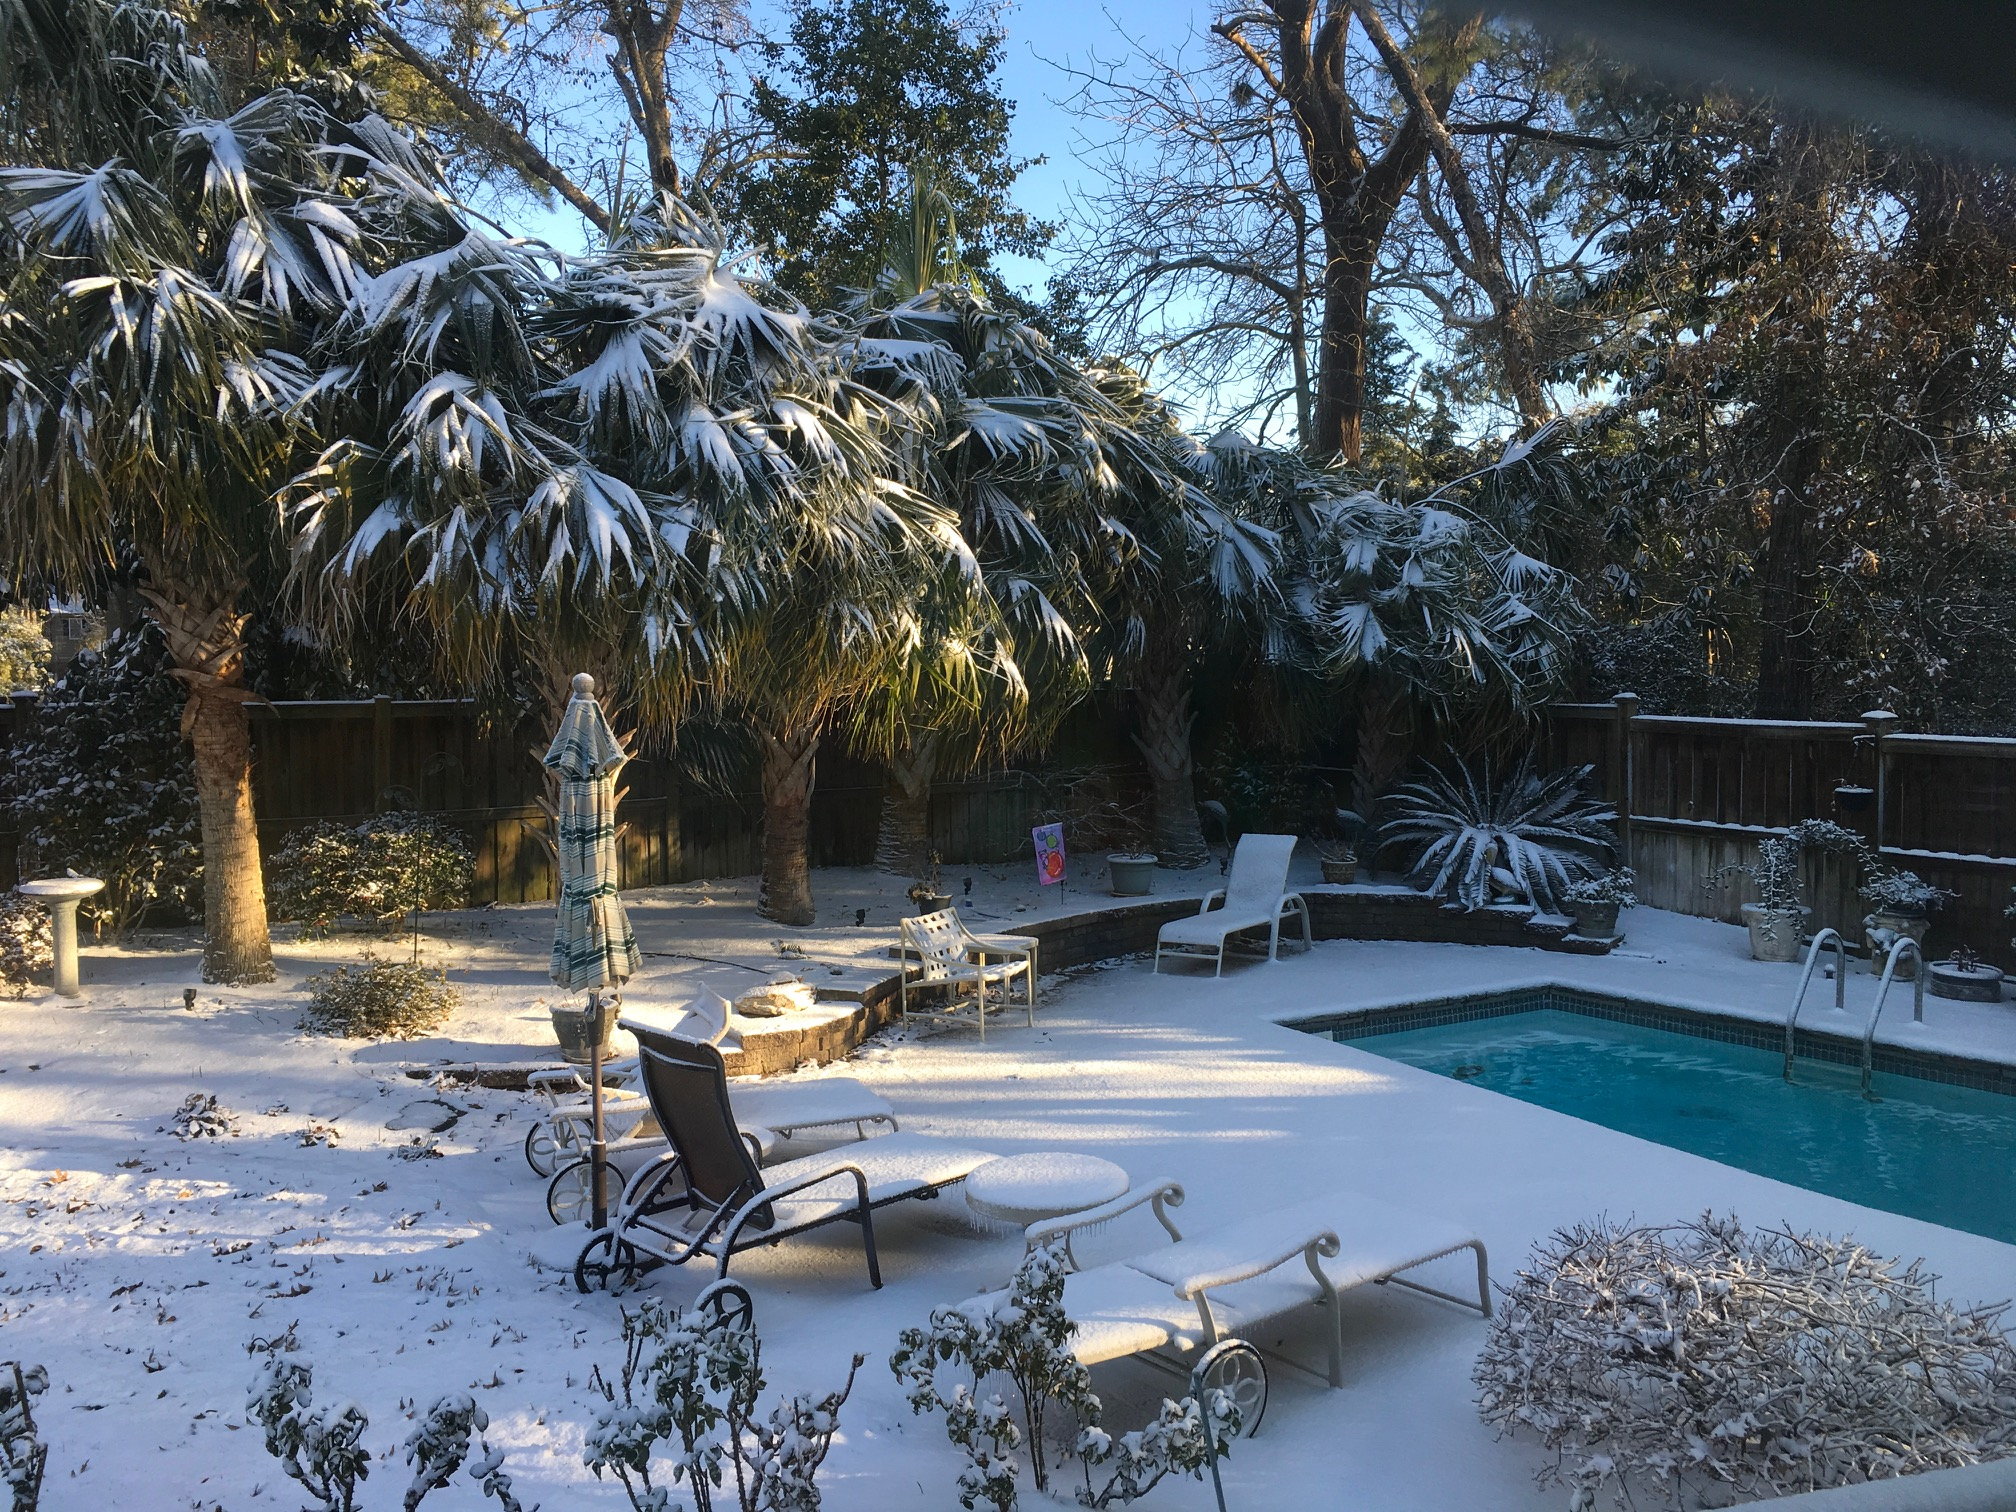 <div class='meta'><div class='origin-logo' data-origin='none'></div><span class='caption-text' data-credit='Linda Thorburn - ABC11 Eyewitness'>Snow in Wilmington.</span></div>